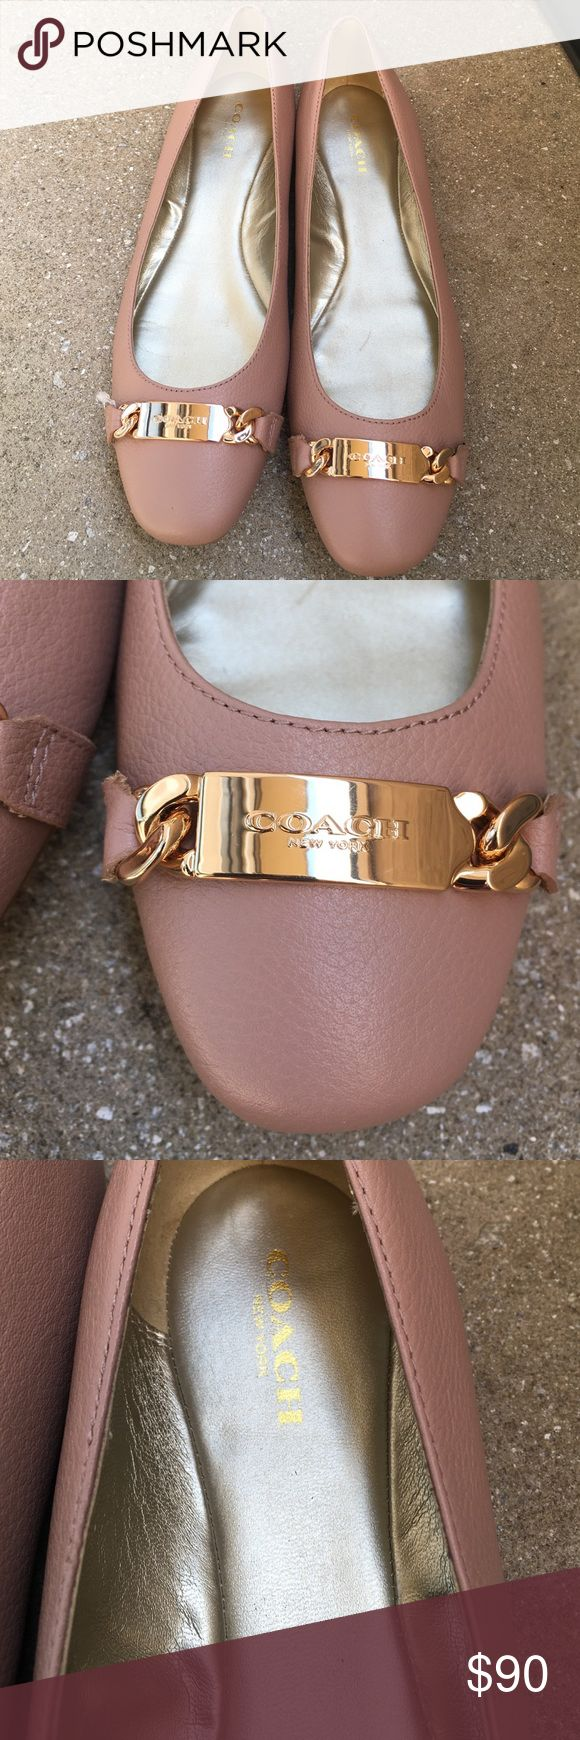 Coach shoes Brand new pair of Coach leather shoes . Missing box . Goldtone hardware . Color is blush Coach Shoes Flats & Loafers